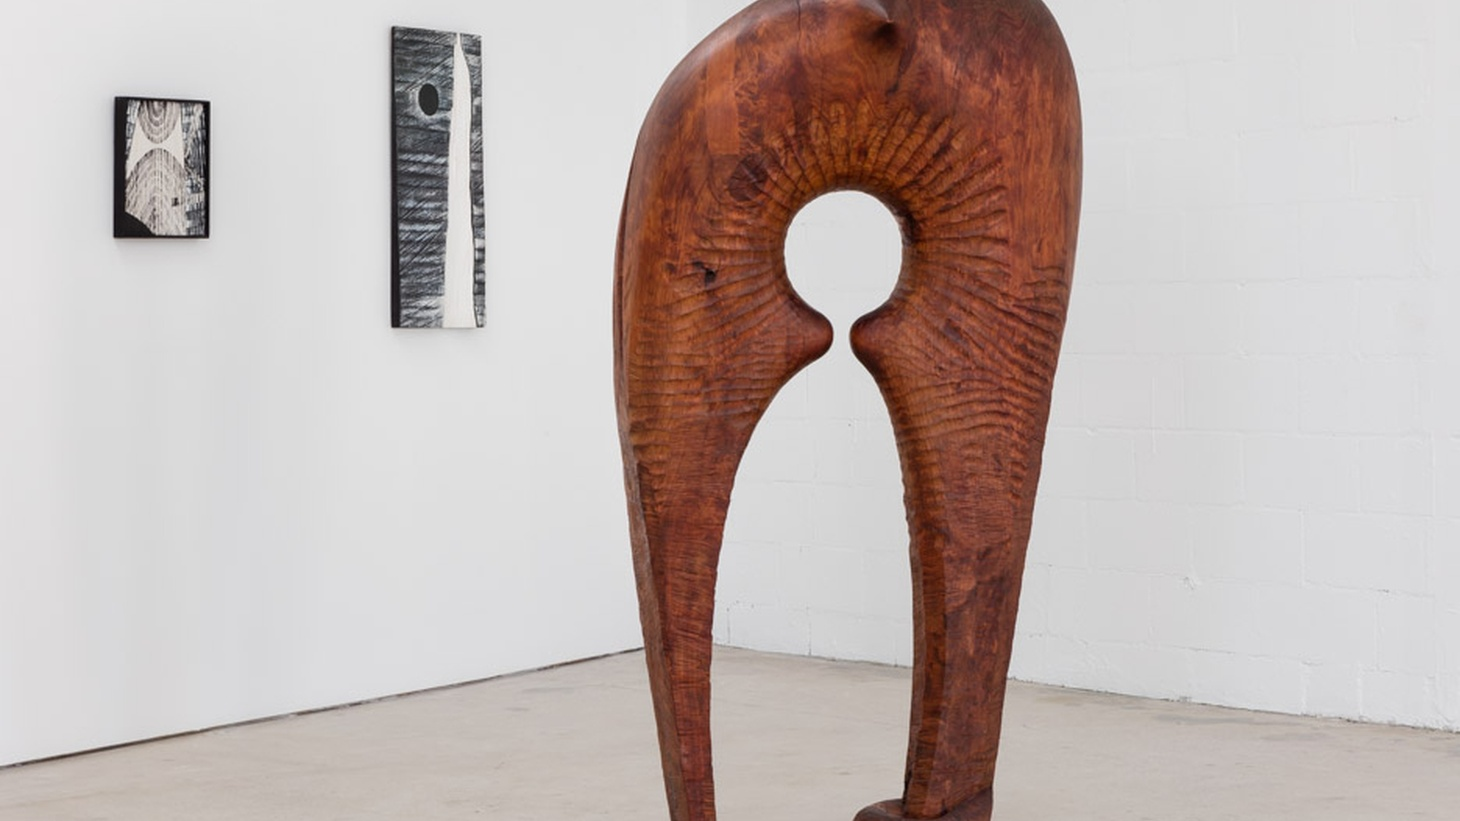 Hunter Drohojowska-Philp talks about sculptures and paintings both old and new.